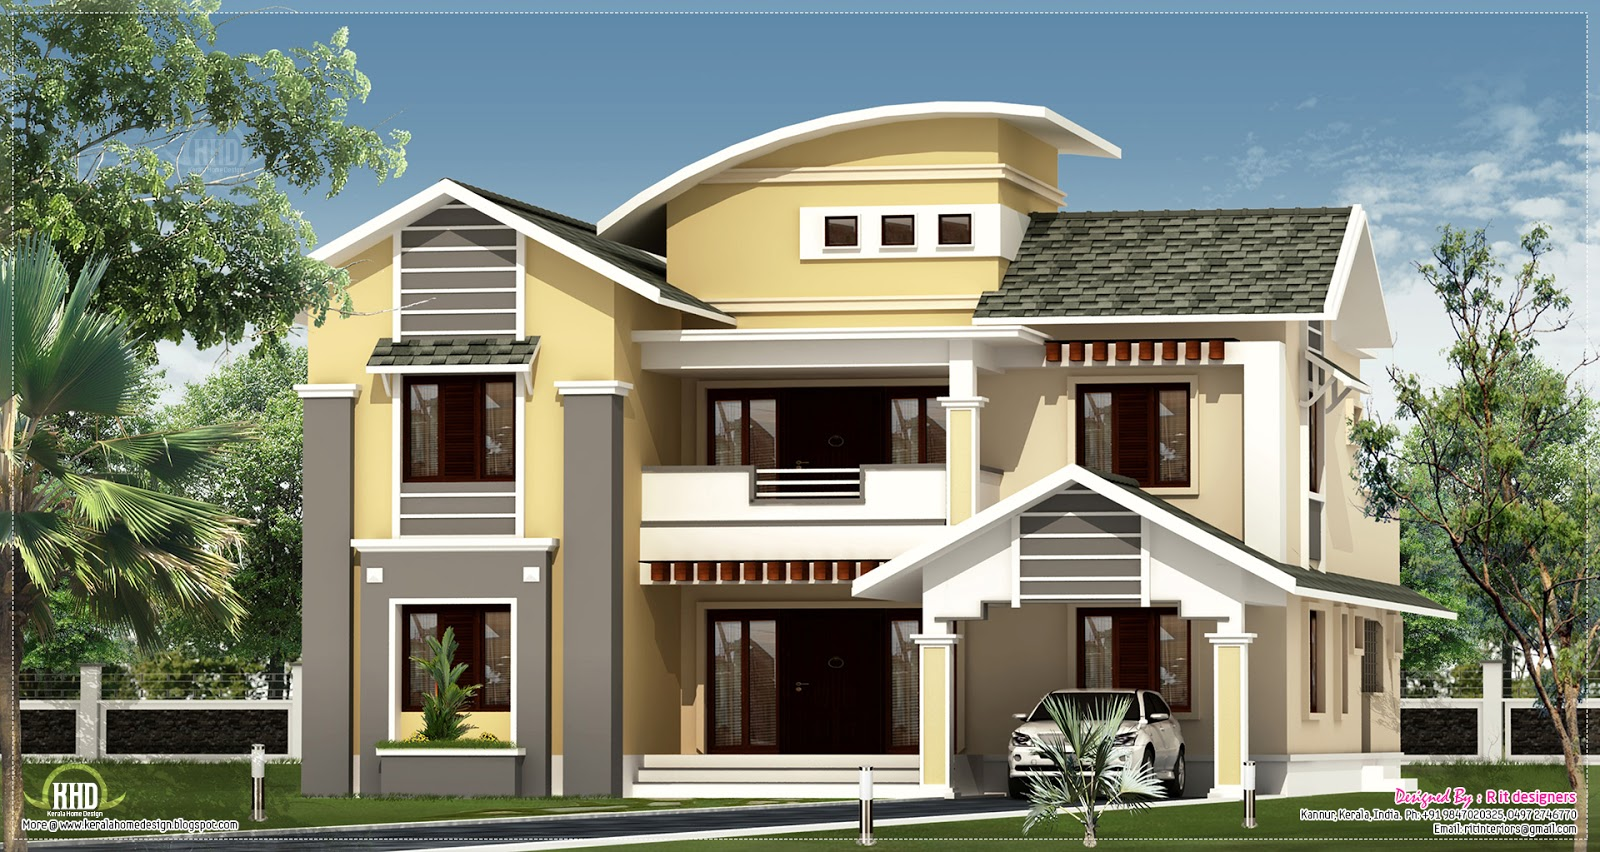 Modern Kerala Villa With Mixed Roof Styles